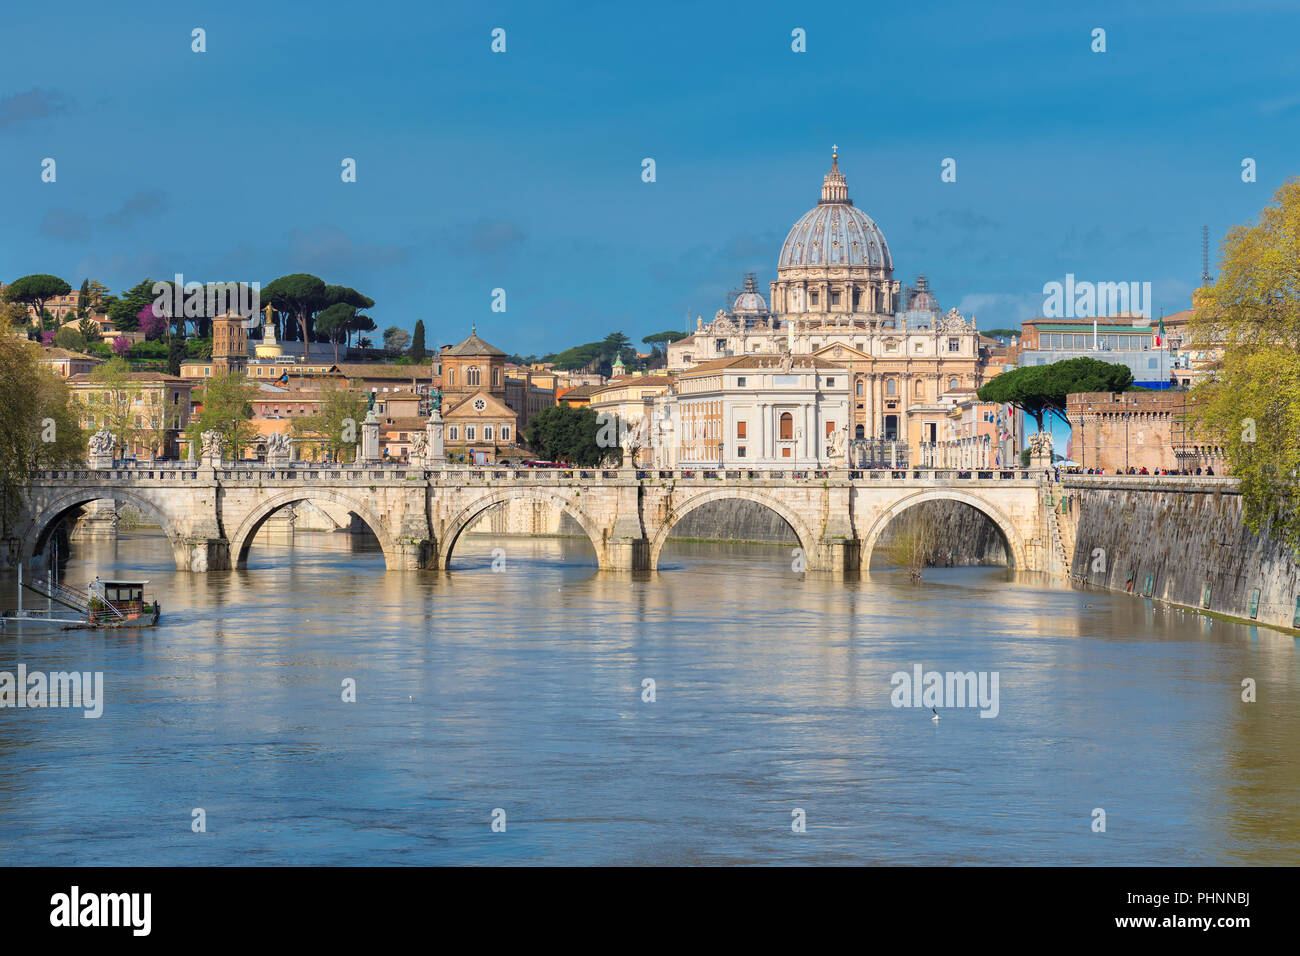 Beautiful view of St. Peter's cathedral with bridge in Vatican, Rome, Italy. - Stock Image